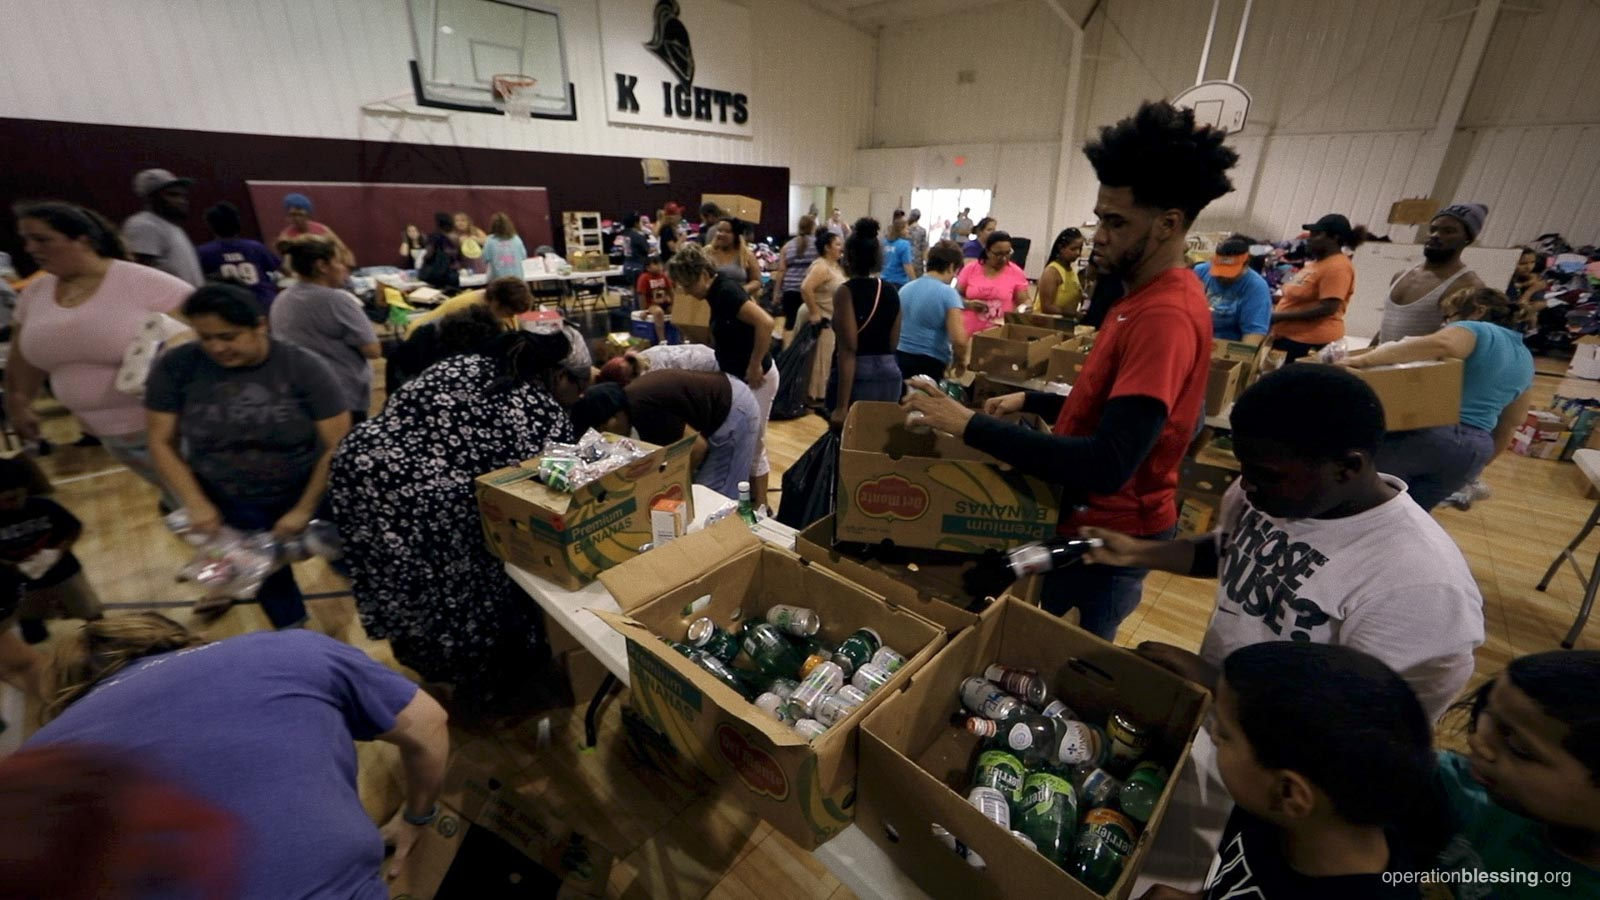 Hundreds of people seek help at an Operation Blessing food distribution.